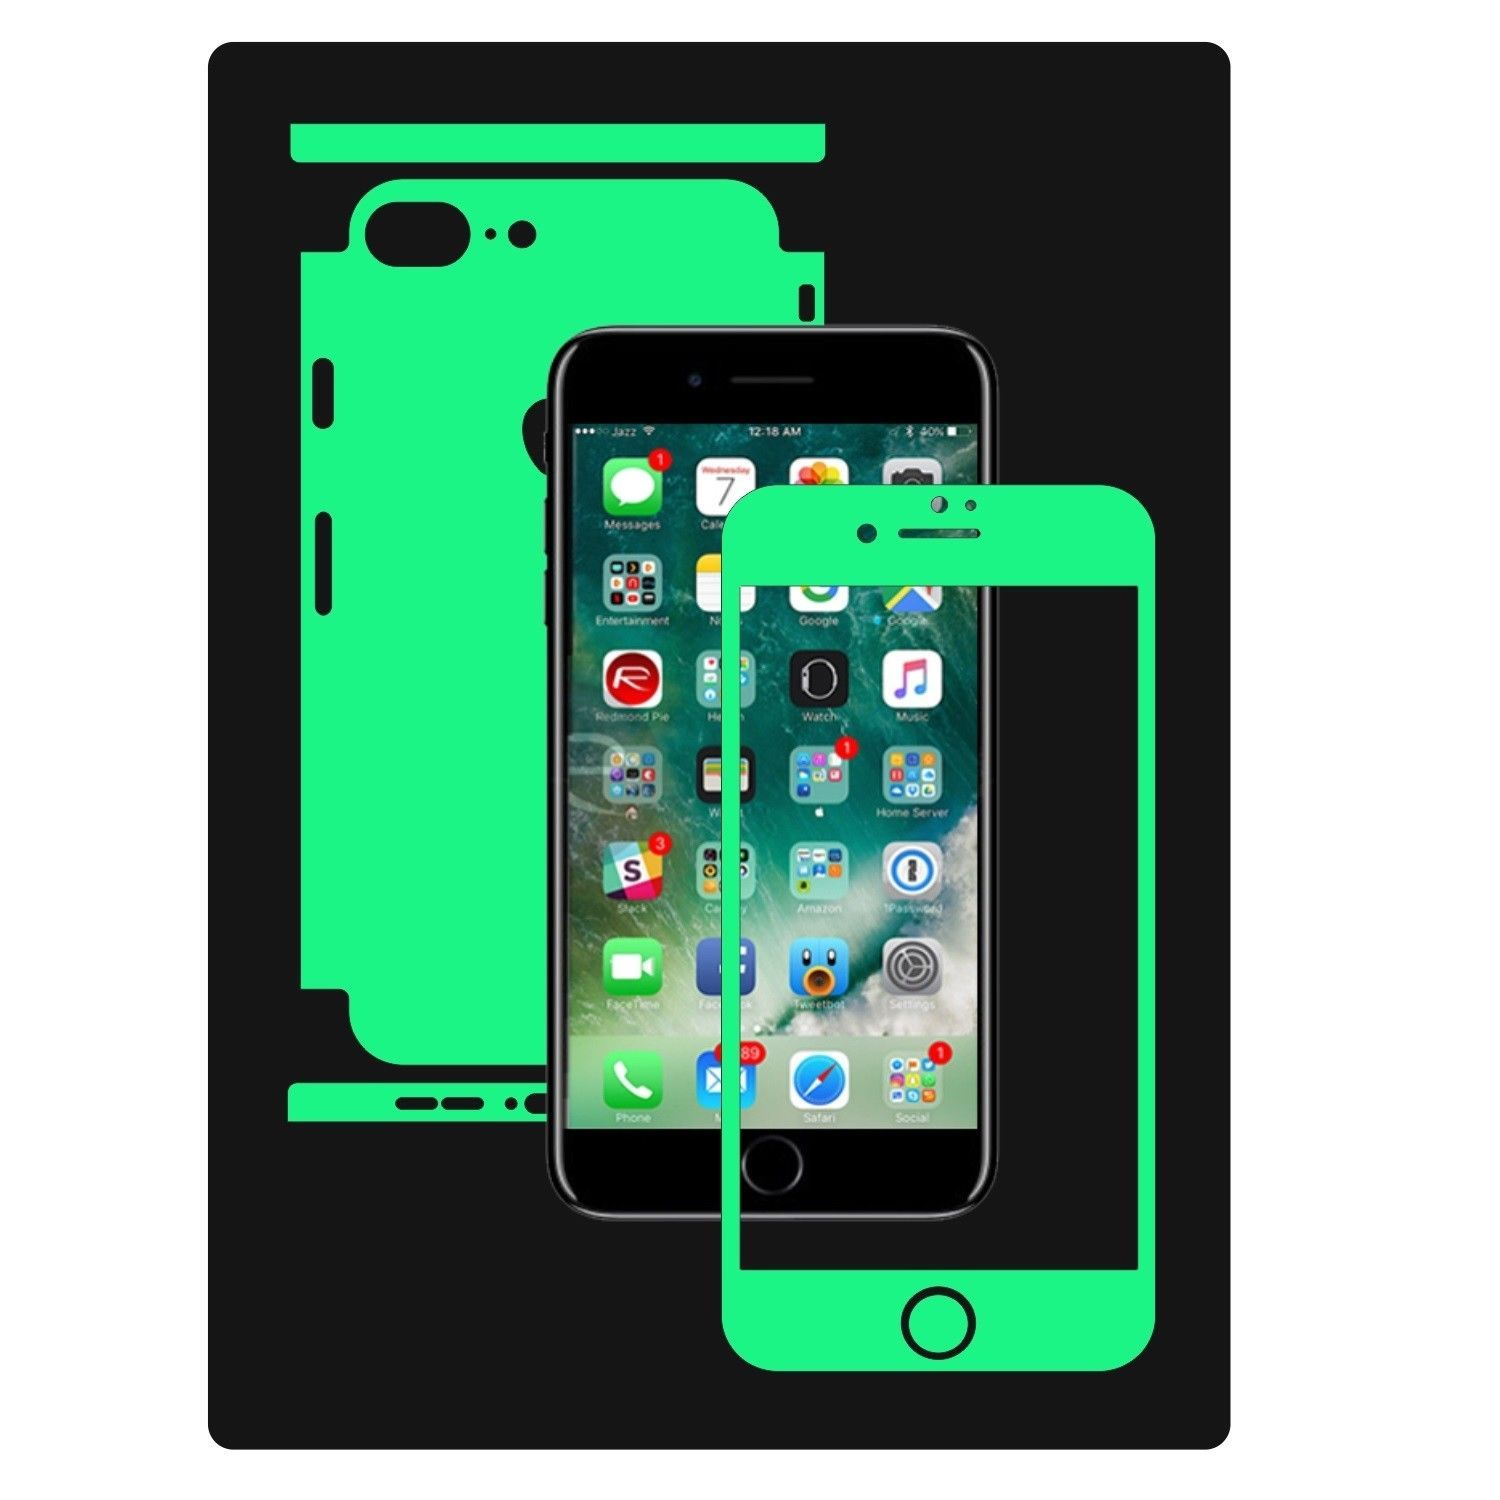 competitive price 8badf 00eb0 Glow in the Dark Skin Protector,Full Body Vinyl Decal,case Wrap ...